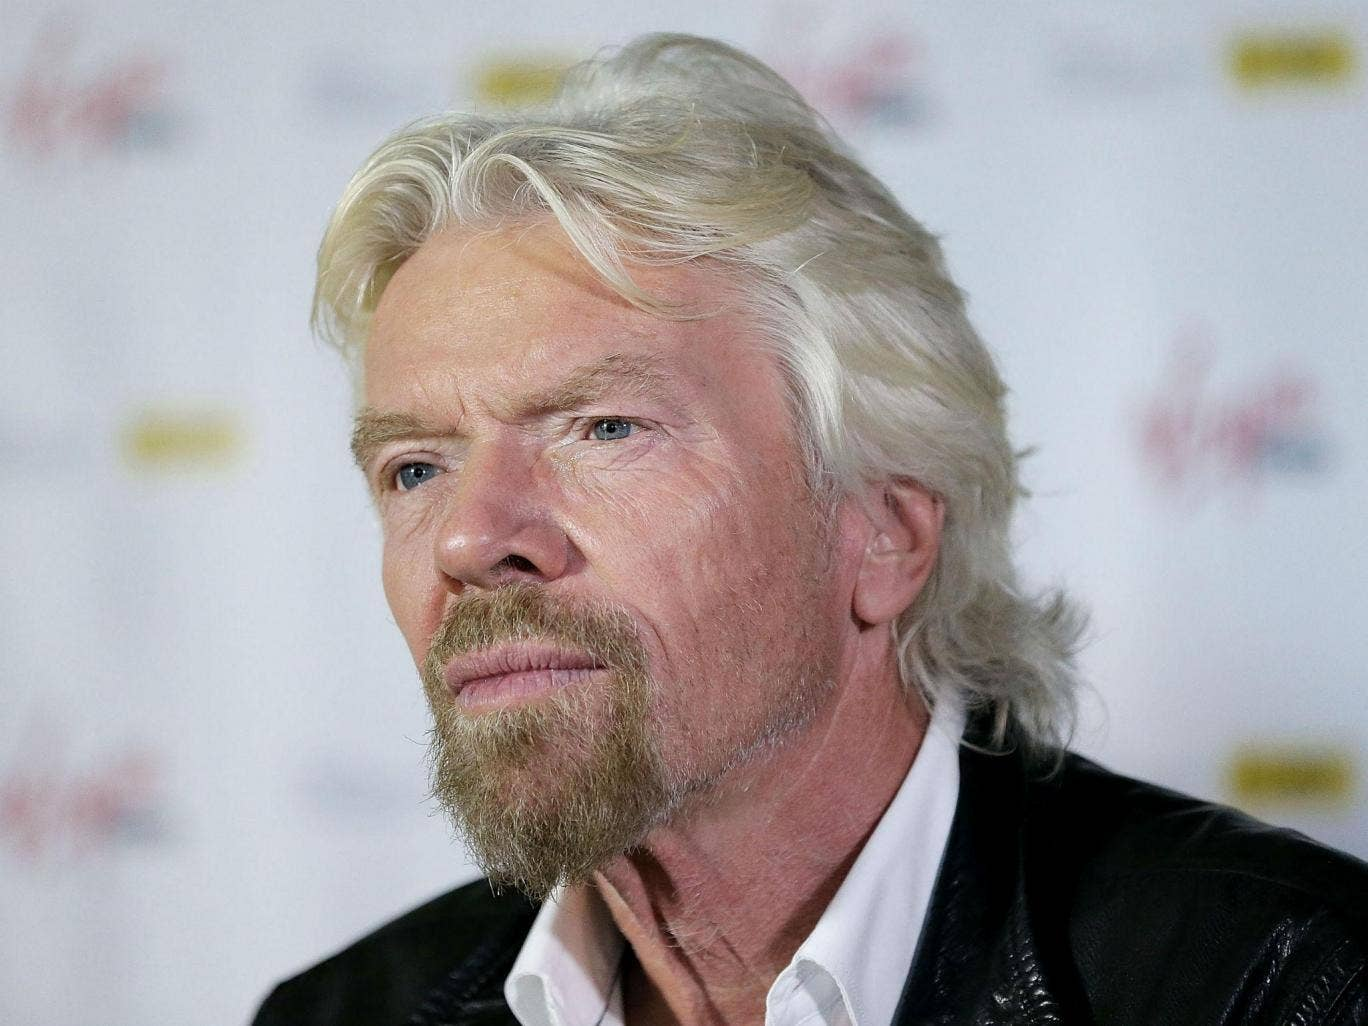 richard branson - photo #33